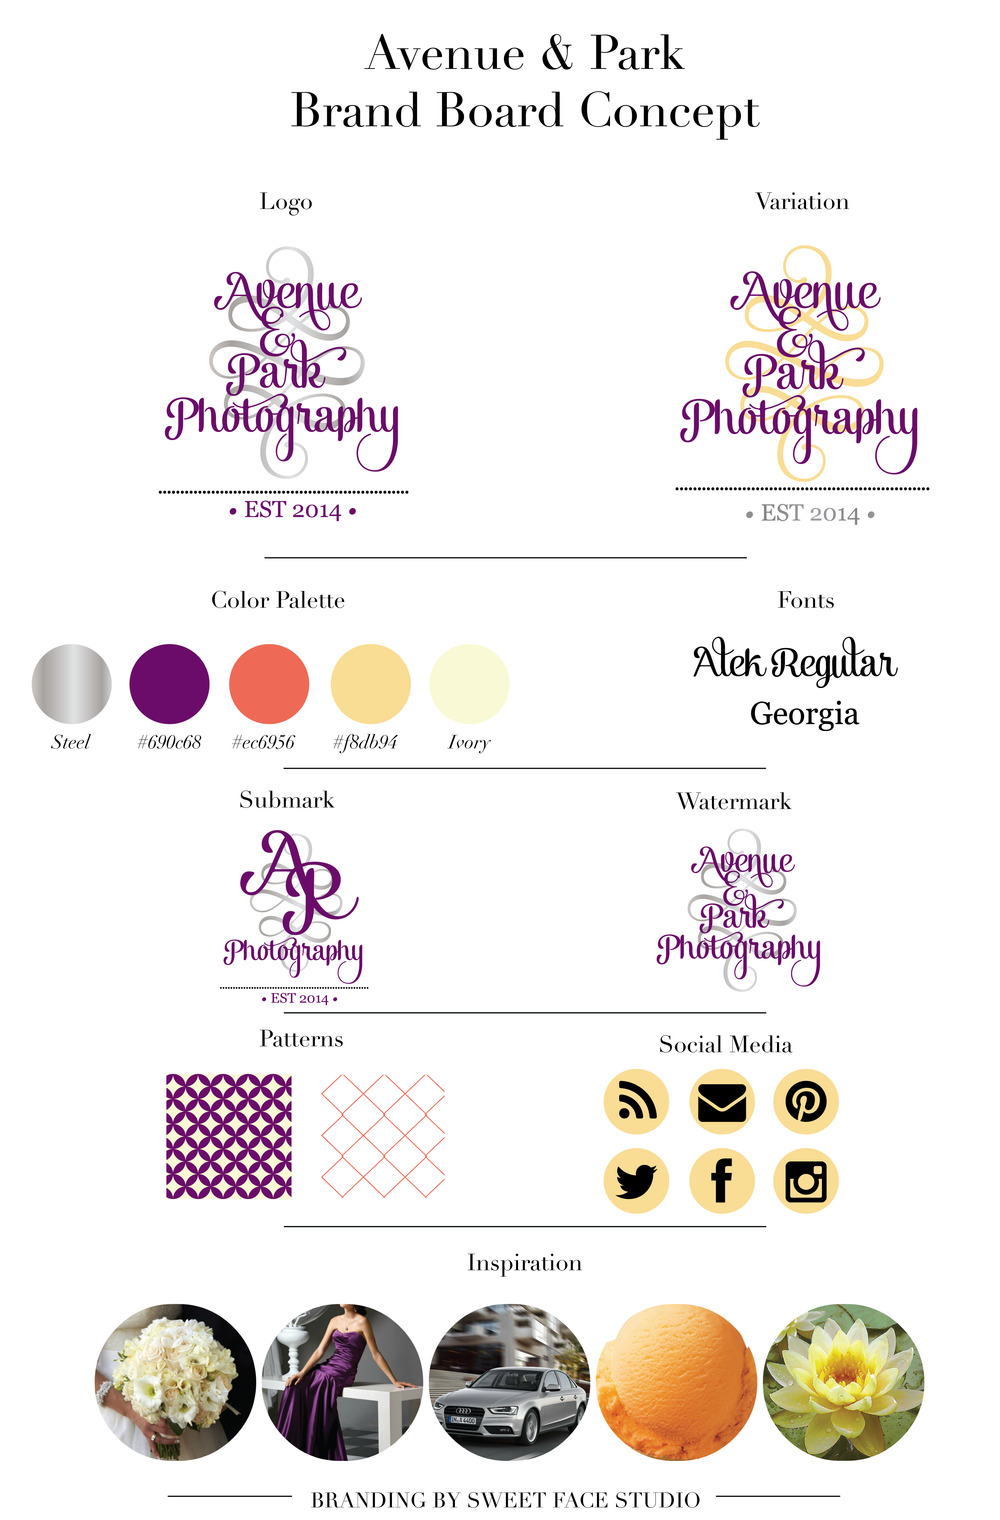 Premade custom business card stationery photography website blog premade custom business card stationery photography website blog brand identity logo letterhead art watermark kit of small businesses branding concept magicingreecefo Choice Image